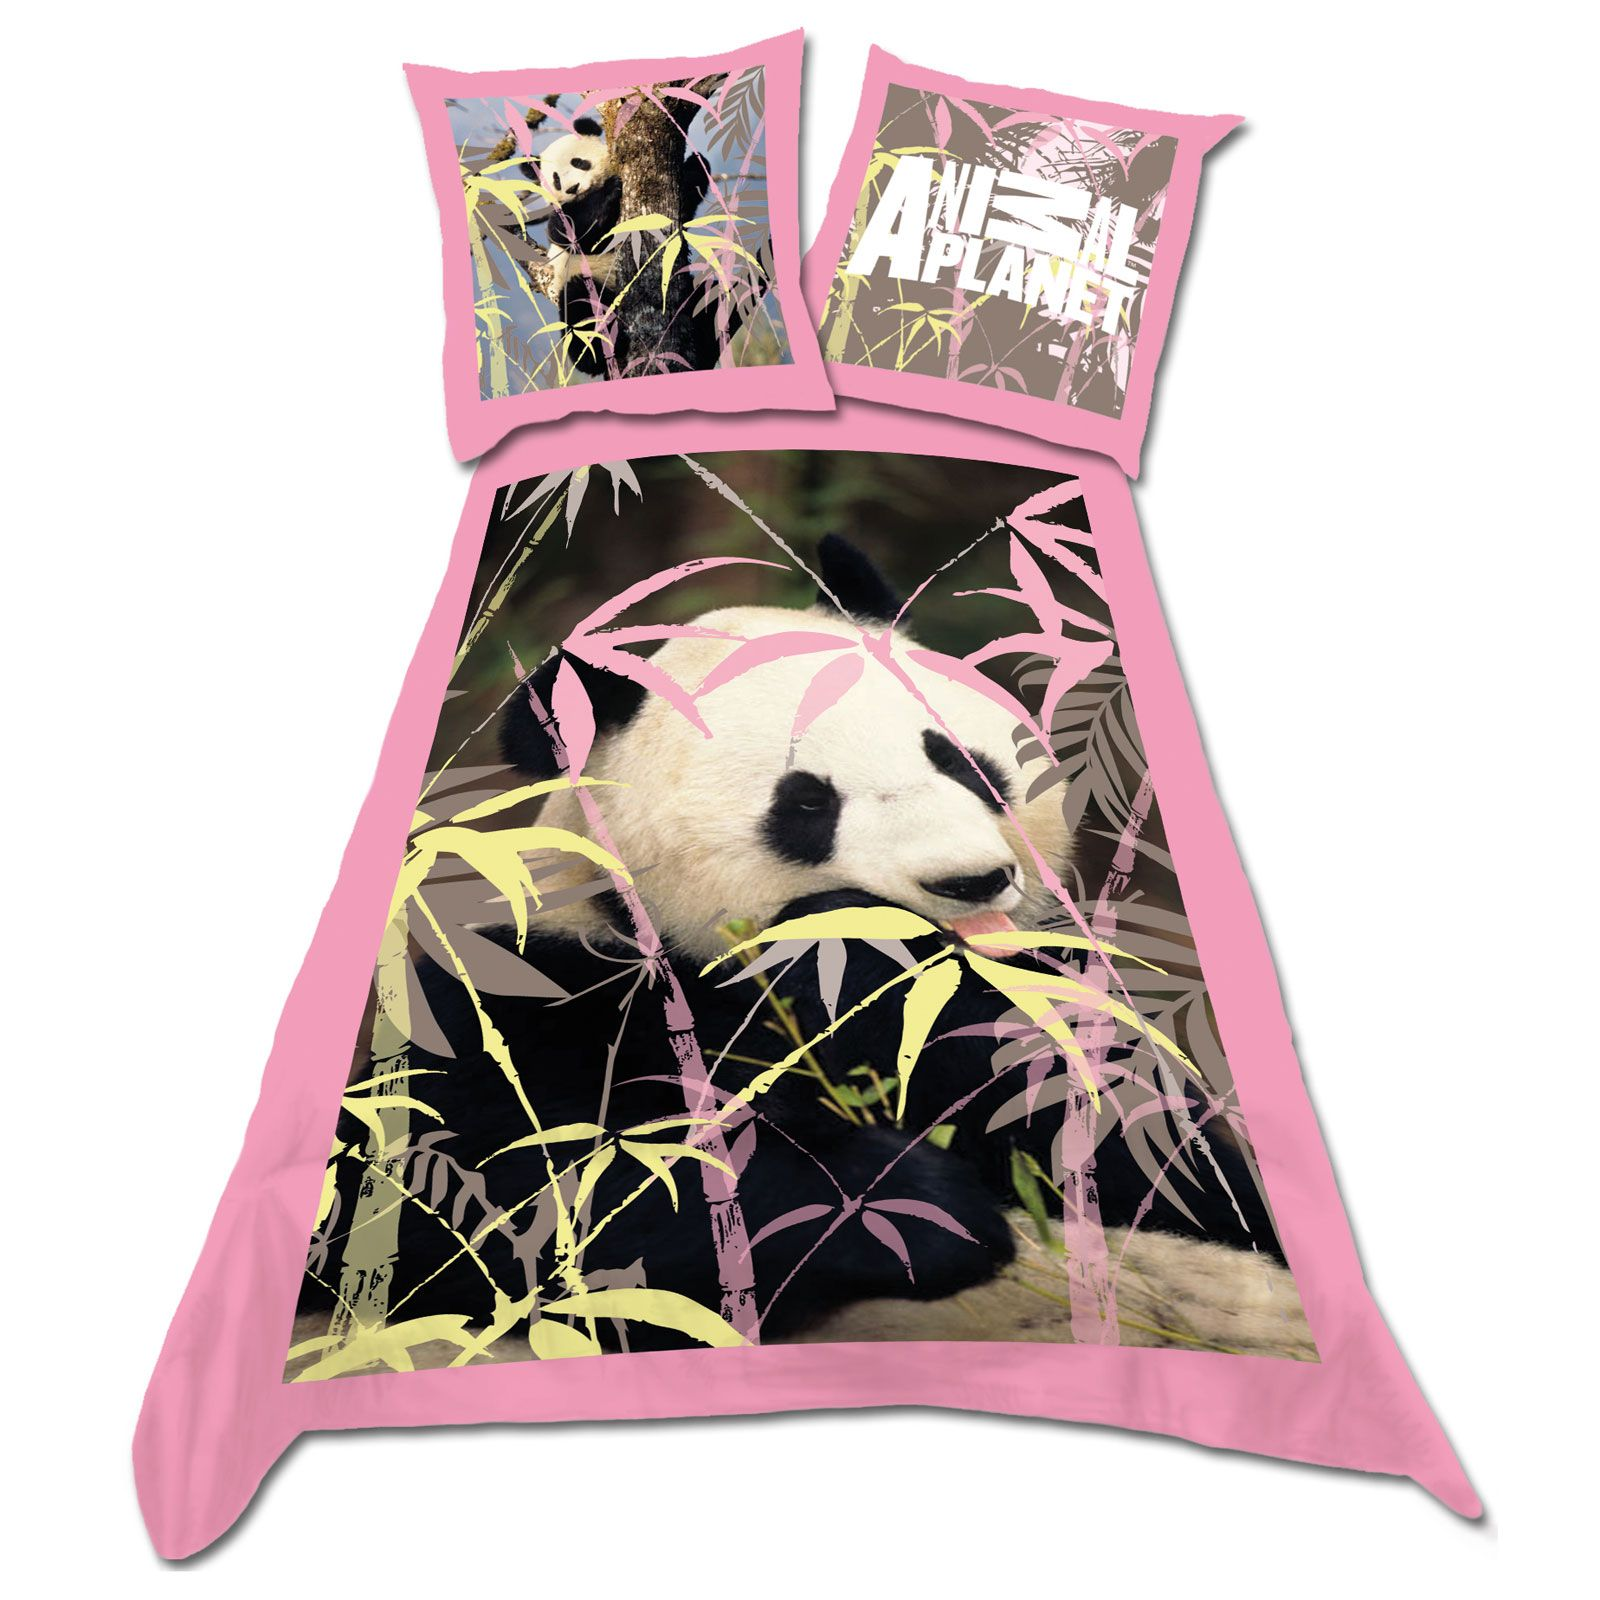 animal planet 39 panda bear 39 single duvet cover 100 cotton